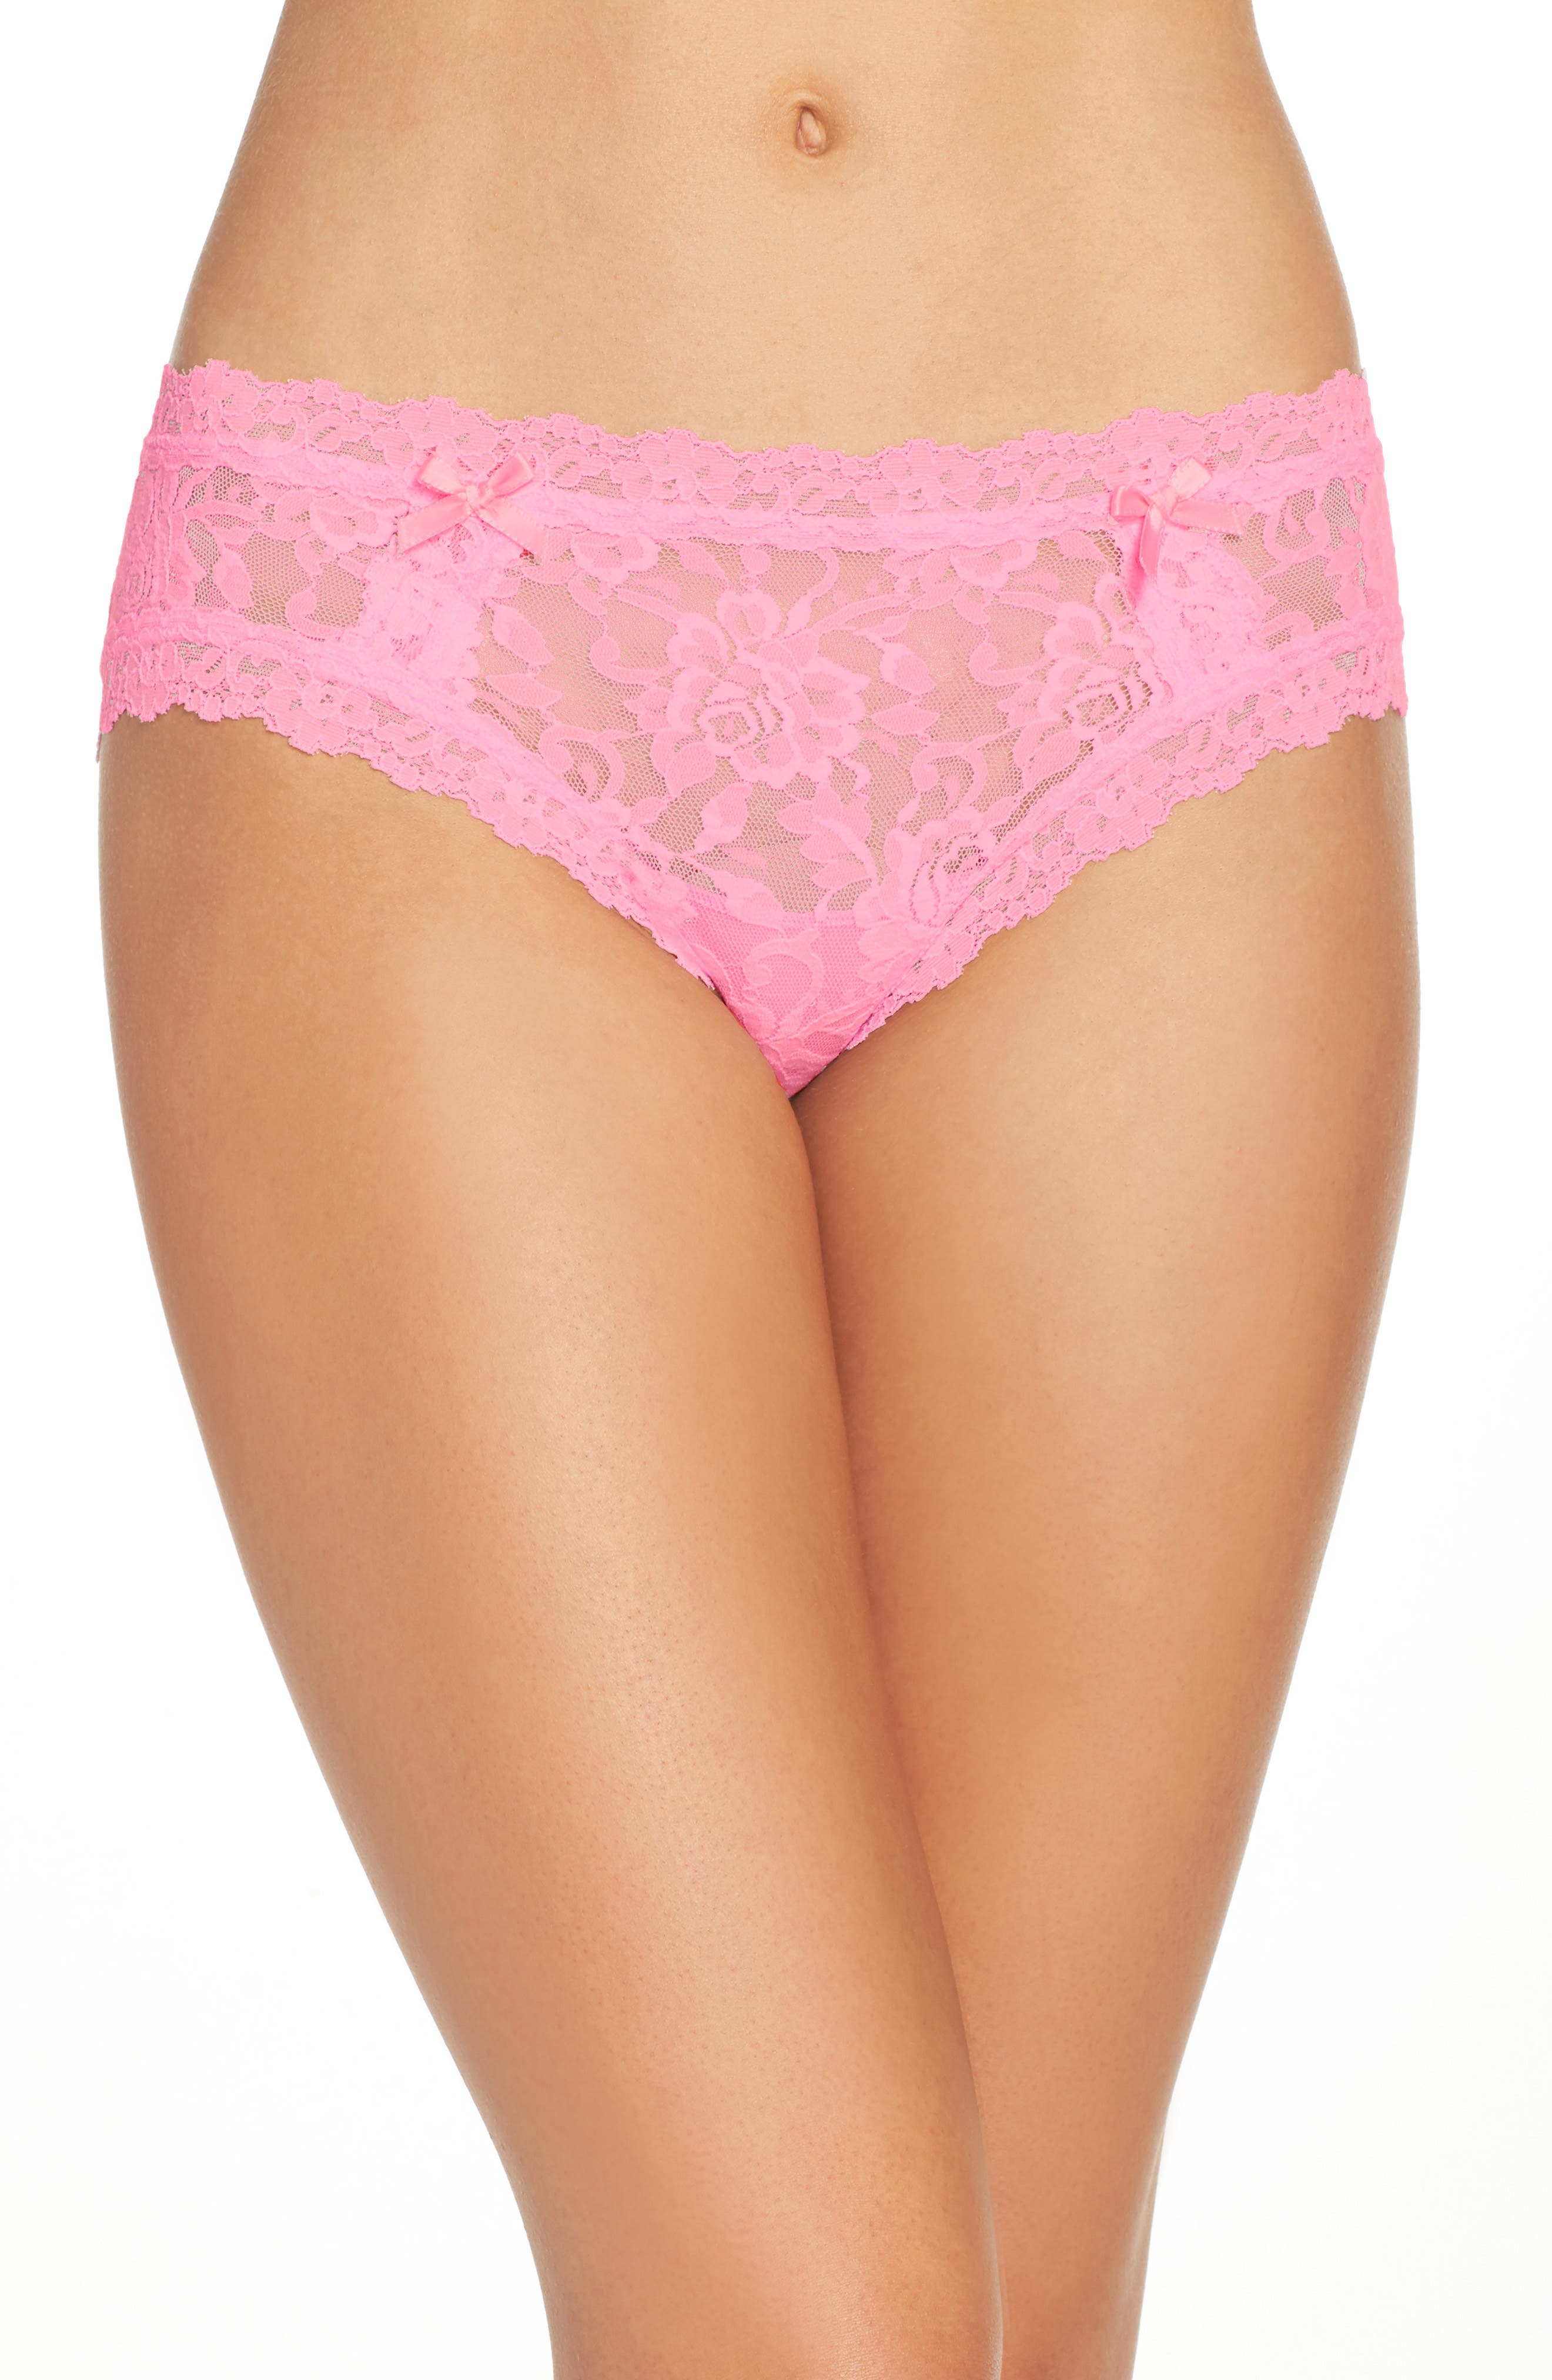 Alternate Image 1 Selected - Hanky Panky 'Signature Lace' Cheeky Hipster Briefs